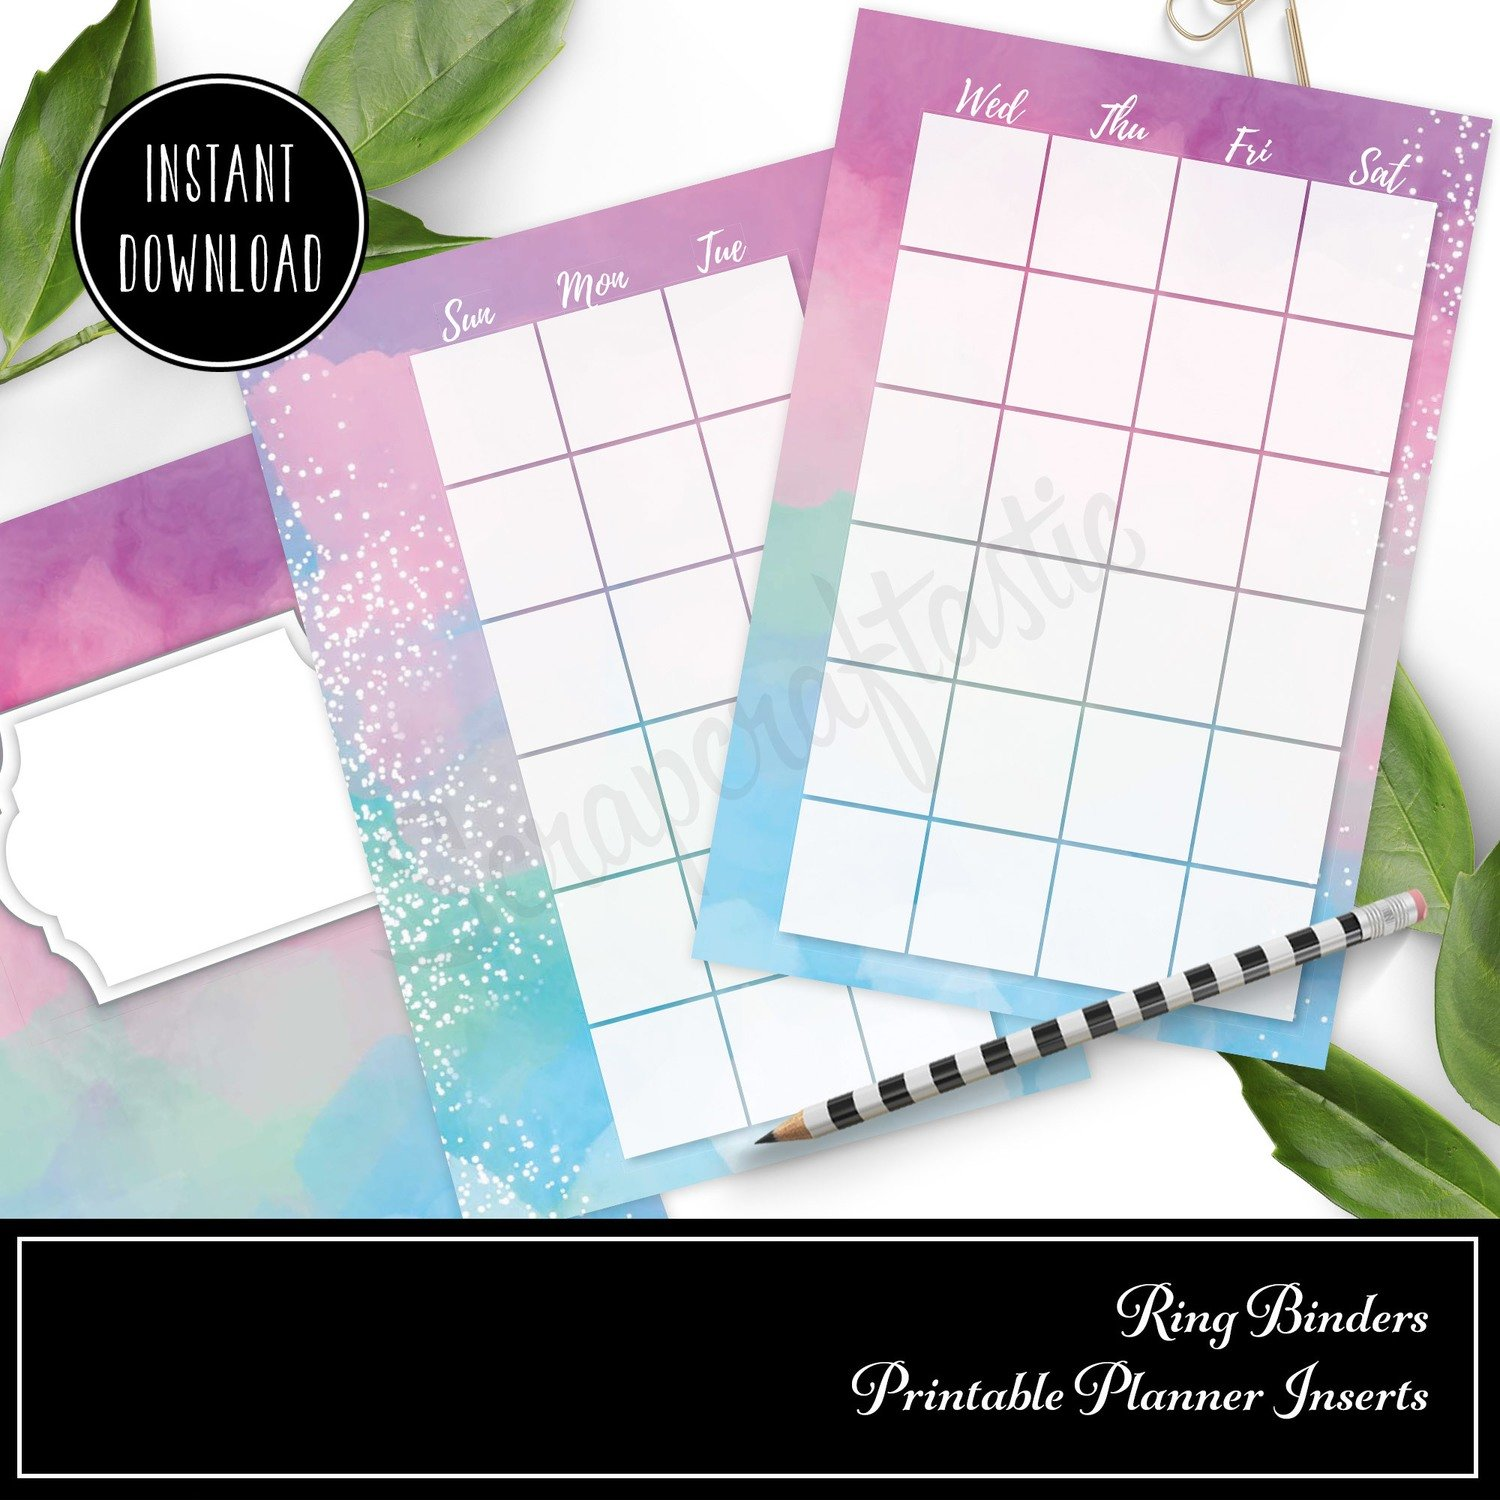 POCKET RINGS - Unicorn Magic Monthly Undated Ring Binder Printable Insert